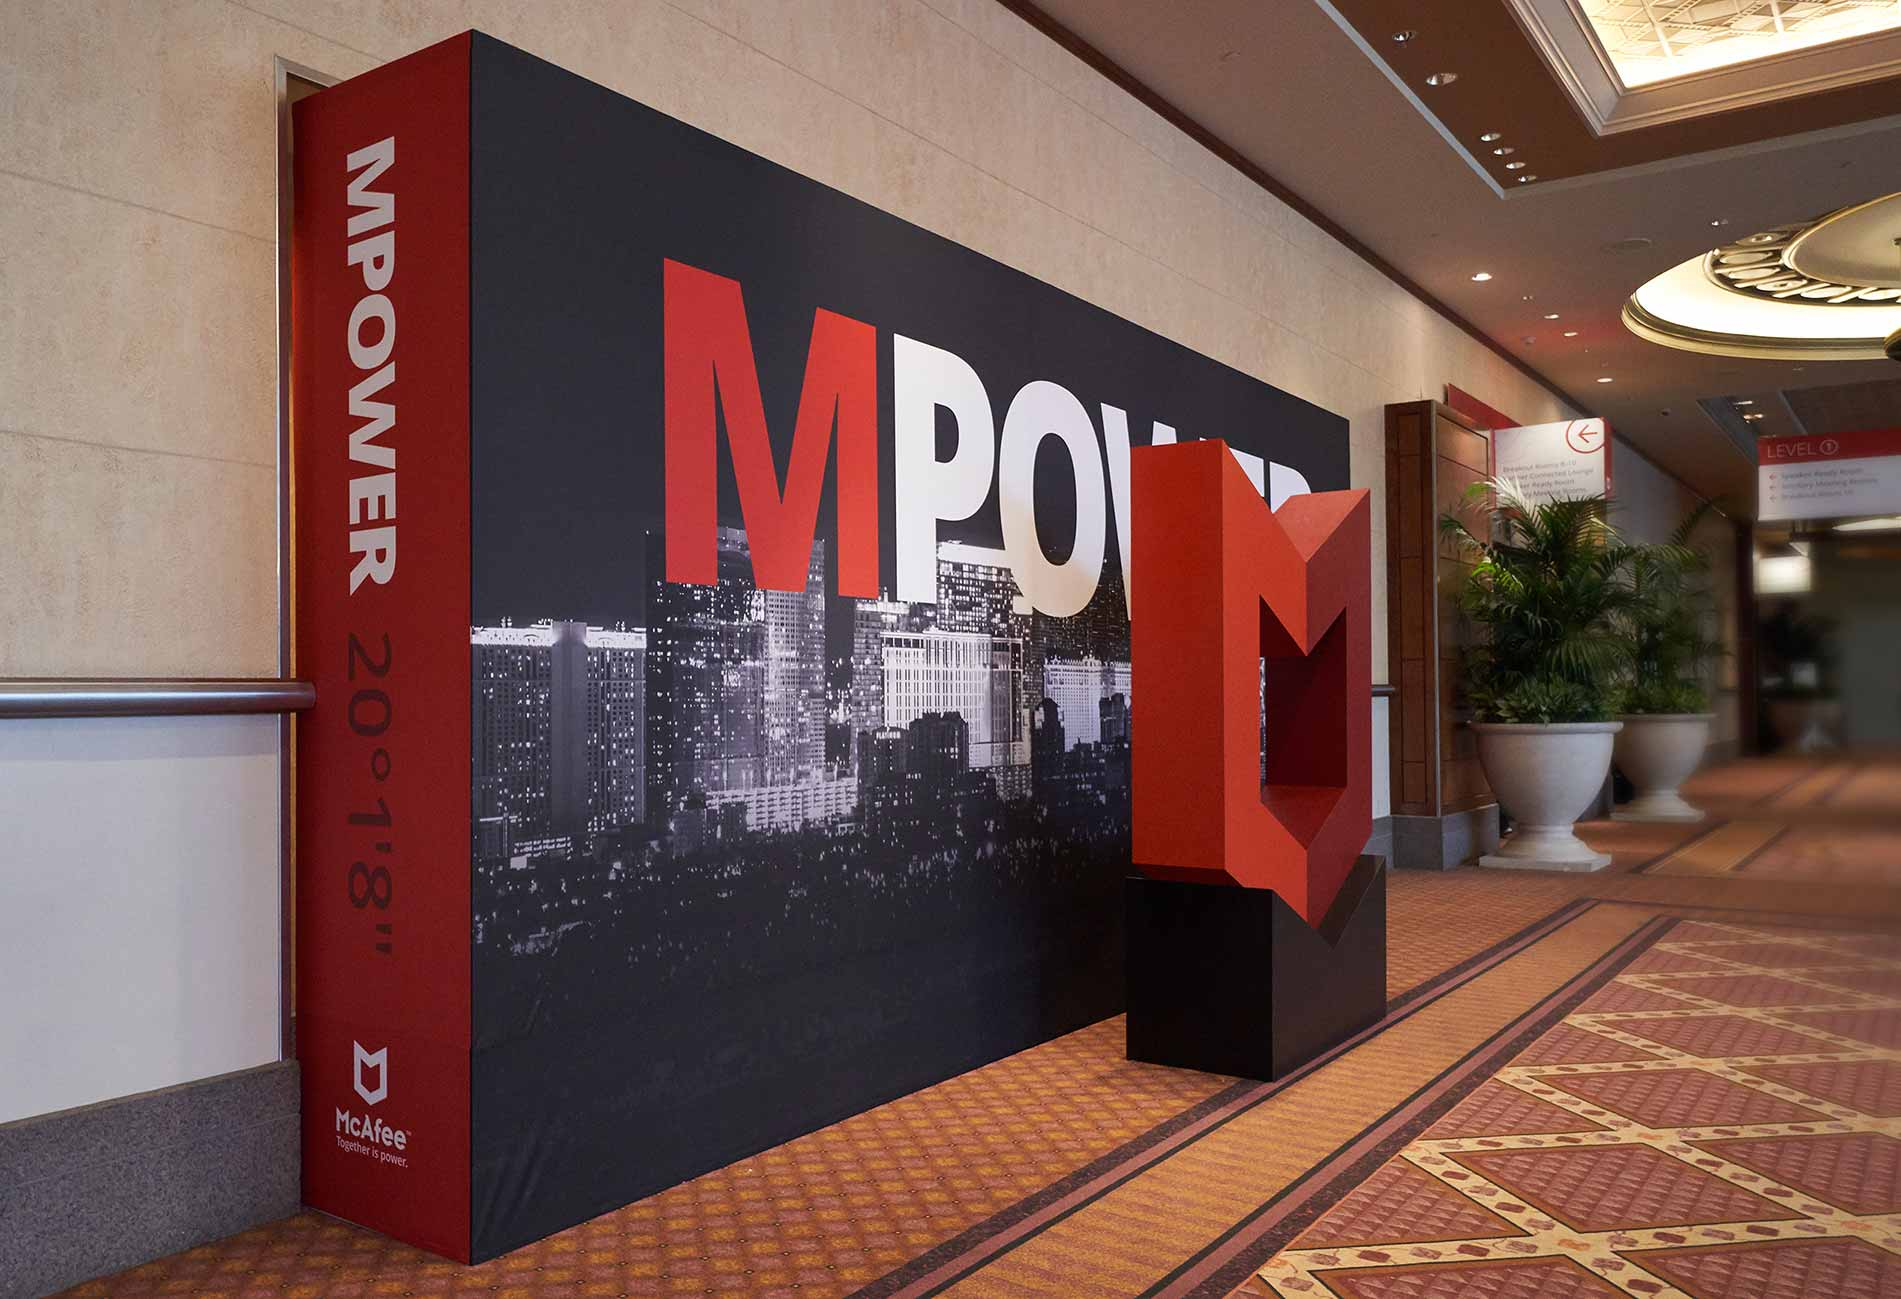 McAfee MPOWER Cybersecurity Summit photo opportunity plinth logo and signage backdrop designed by Giselle Dale